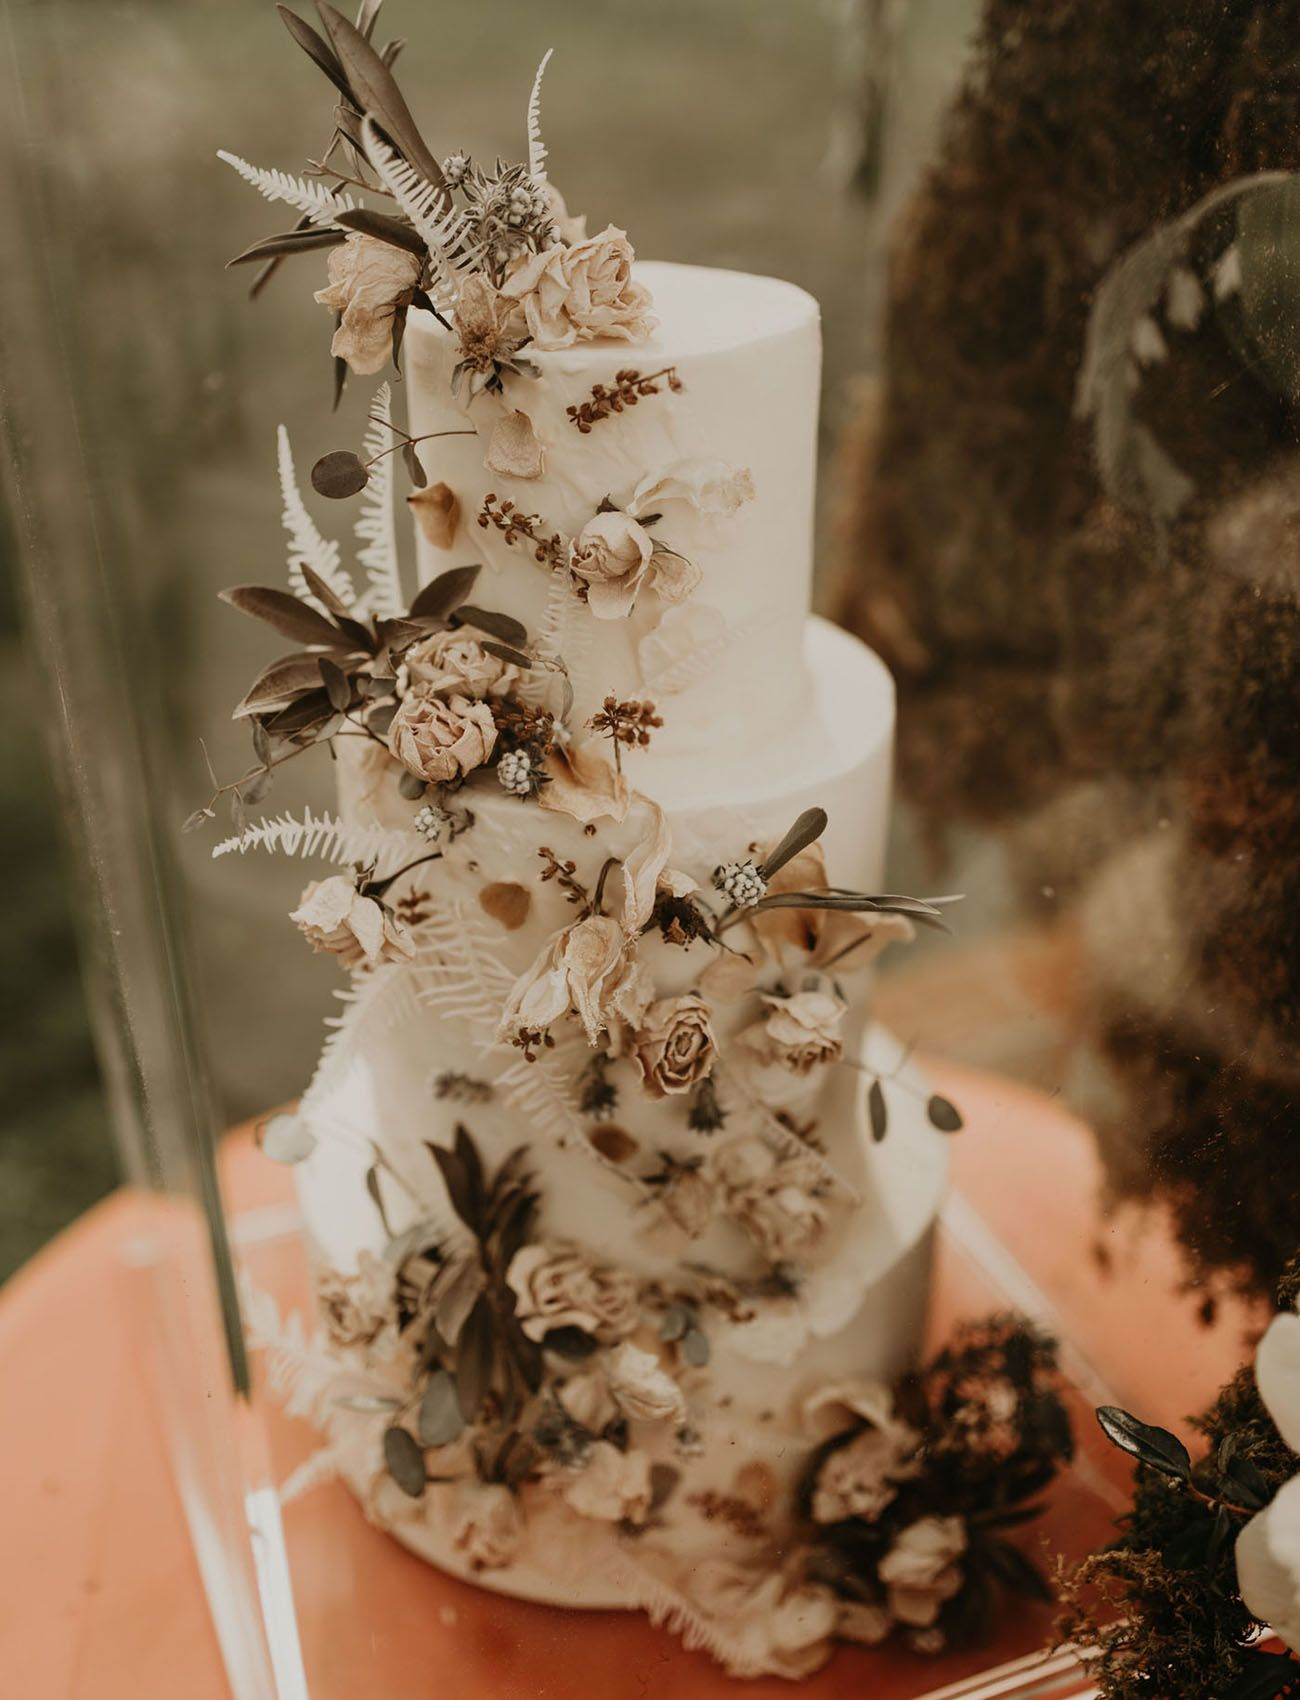 Botanical Details Blossom in this Wedding Inspiration for Romantics | Green Wedding Shoes